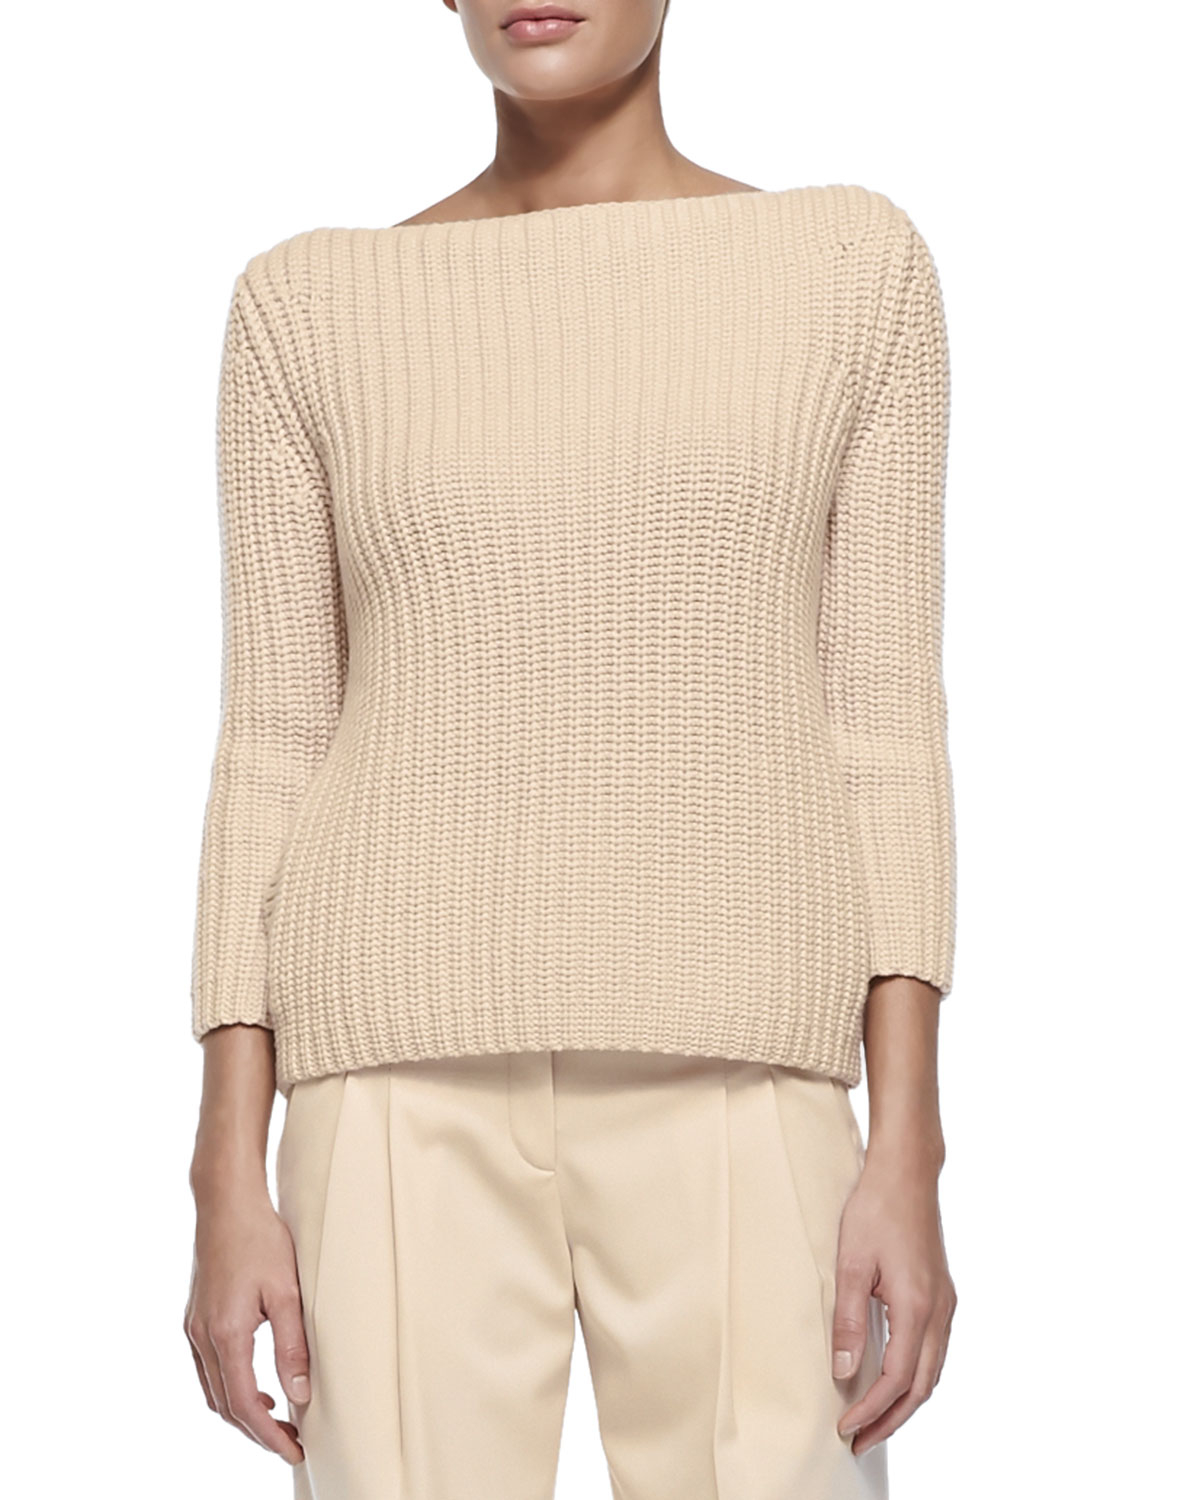 Michael kors Shaker-Knit Sweater in Natural | Lyst